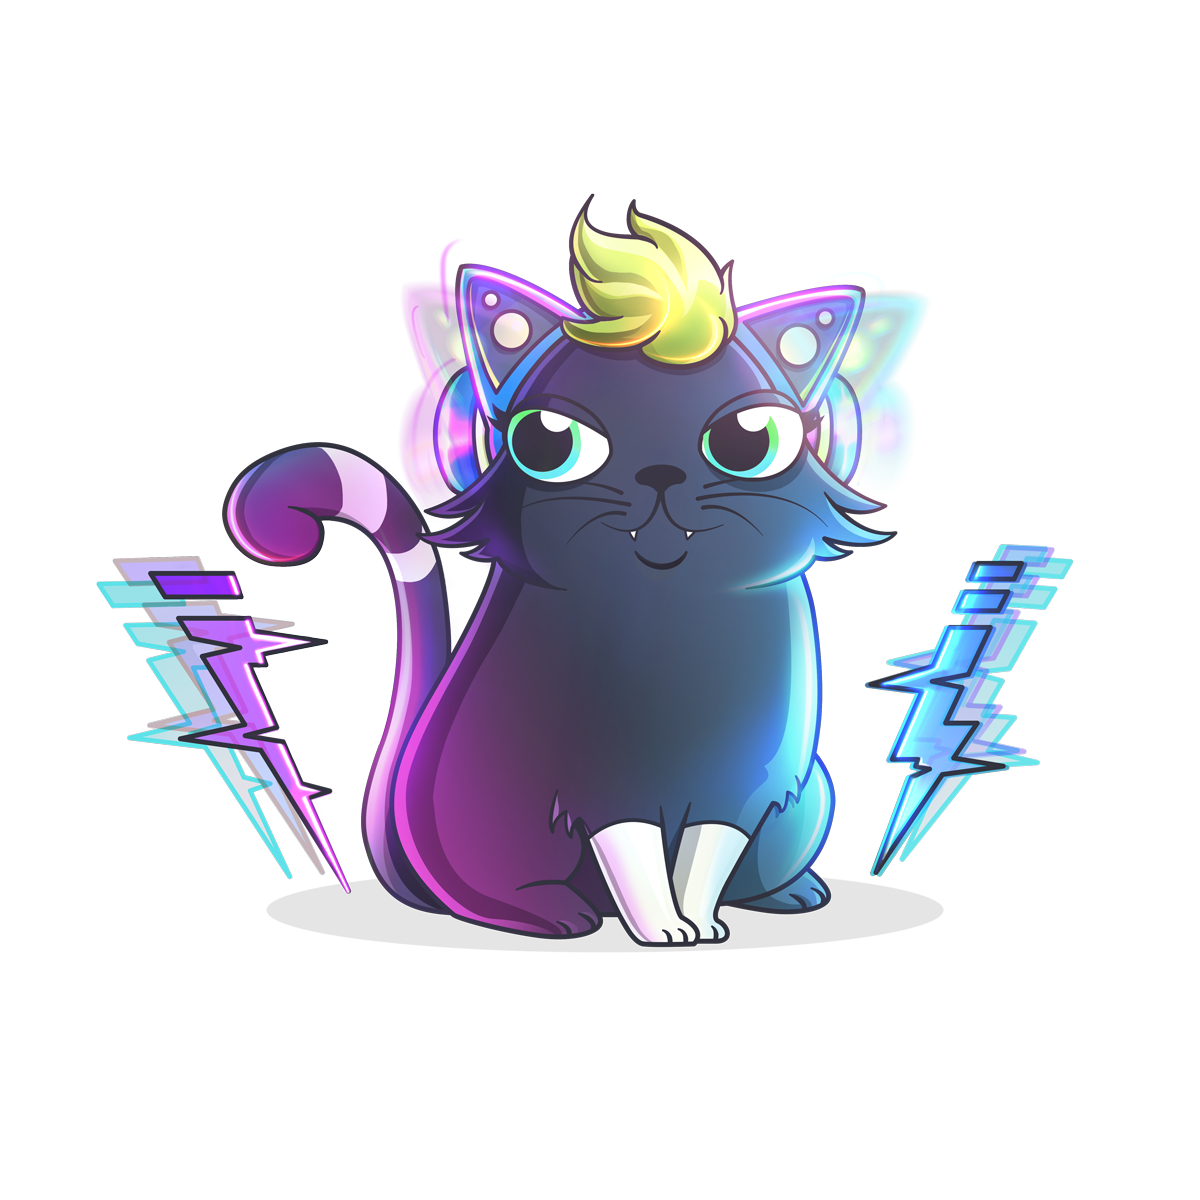 cryptokitty #1674617